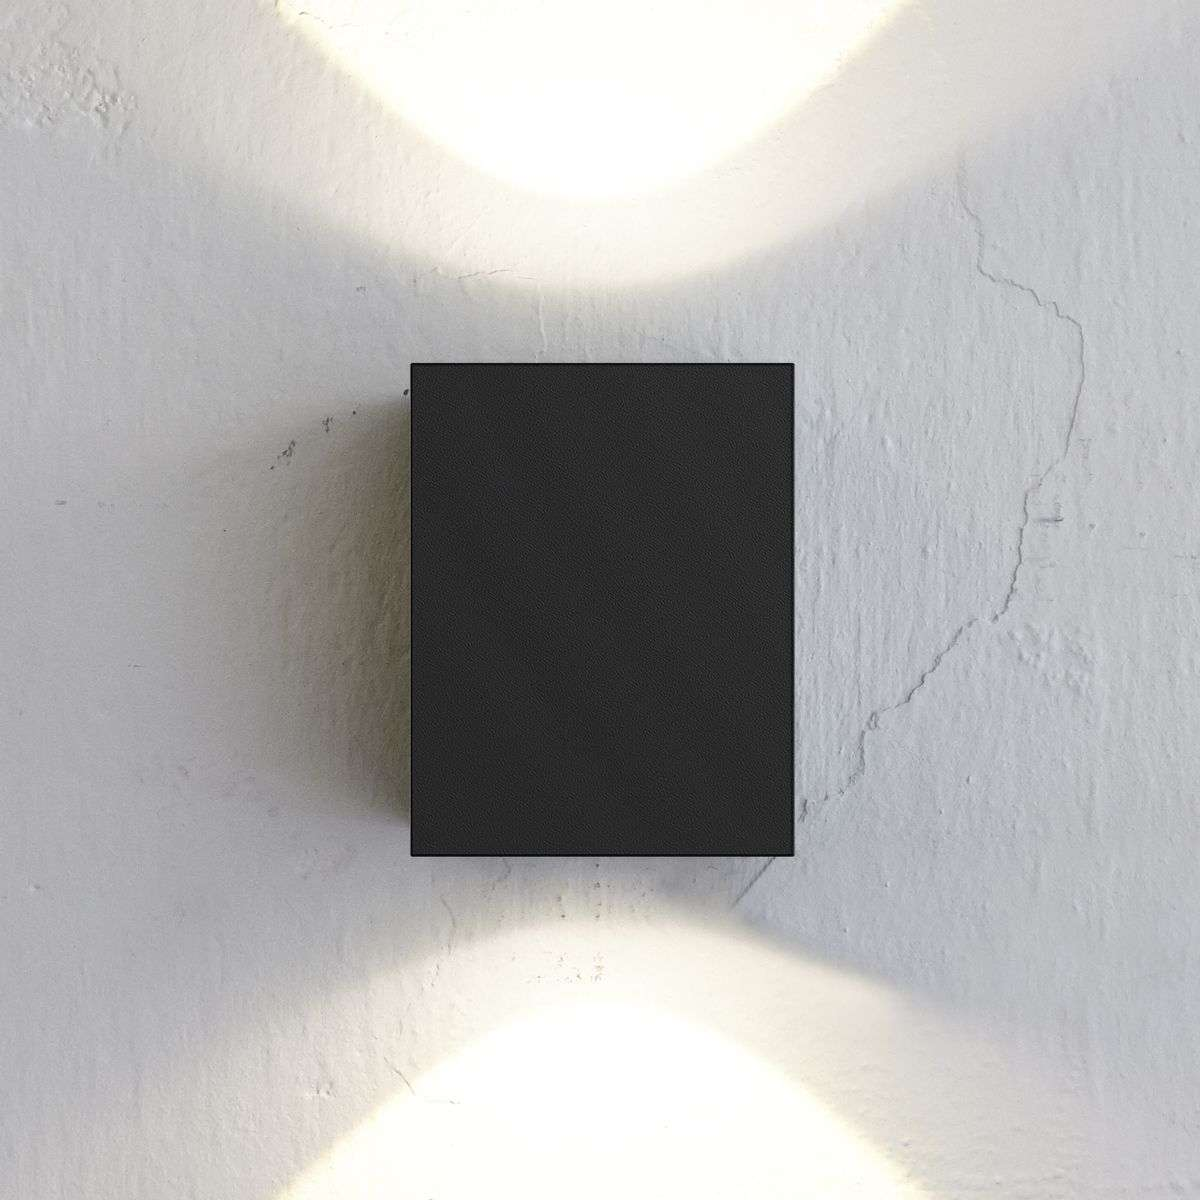 Canto kubi cube shaped led wall light lights canto kubi cube shaped led wall light 7006029 31 aloadofball Image collections